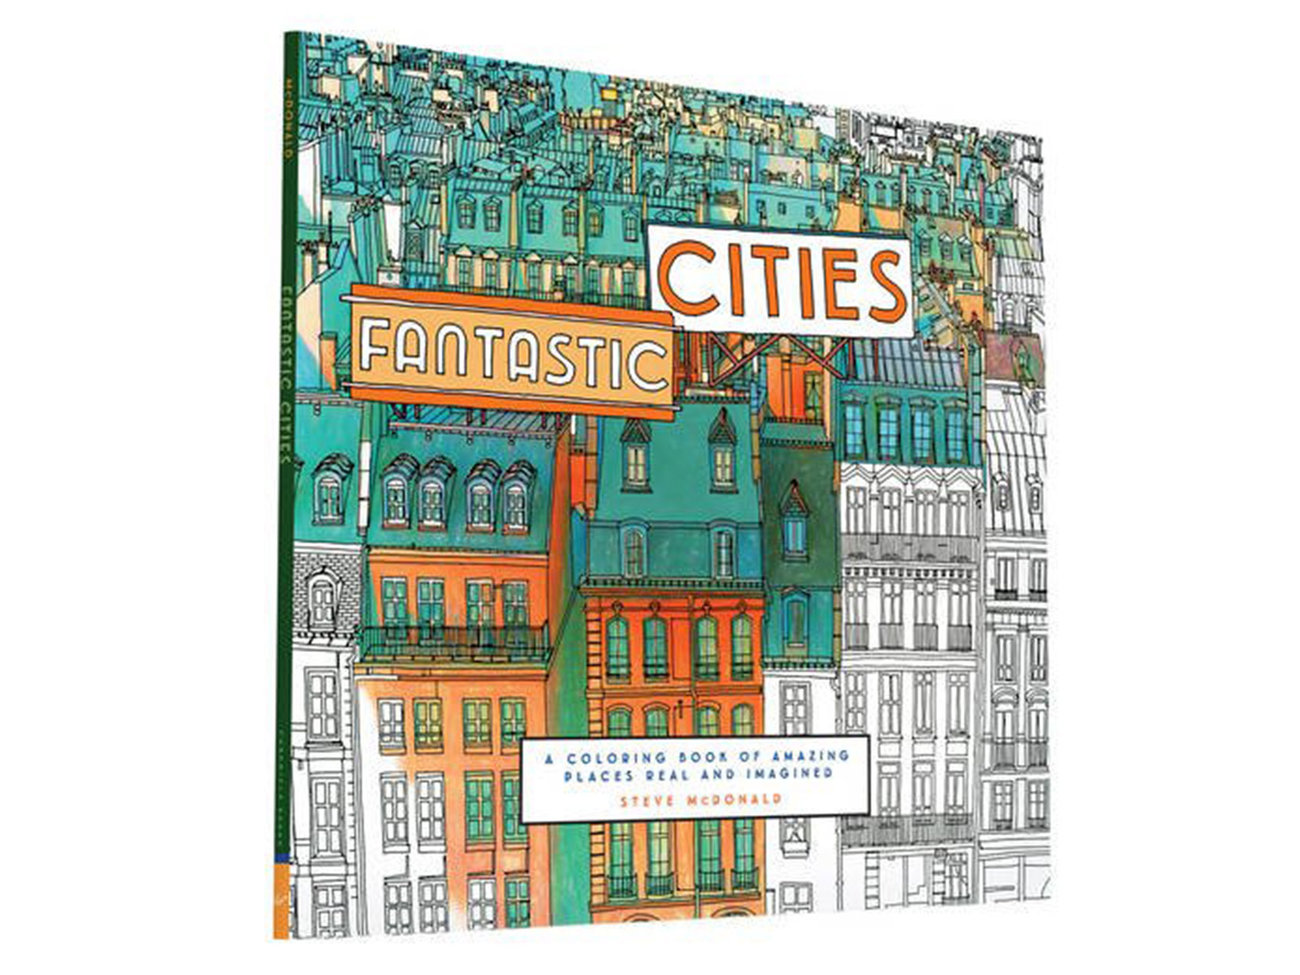 fantastic-cities-book-kids-gg1115.jpg